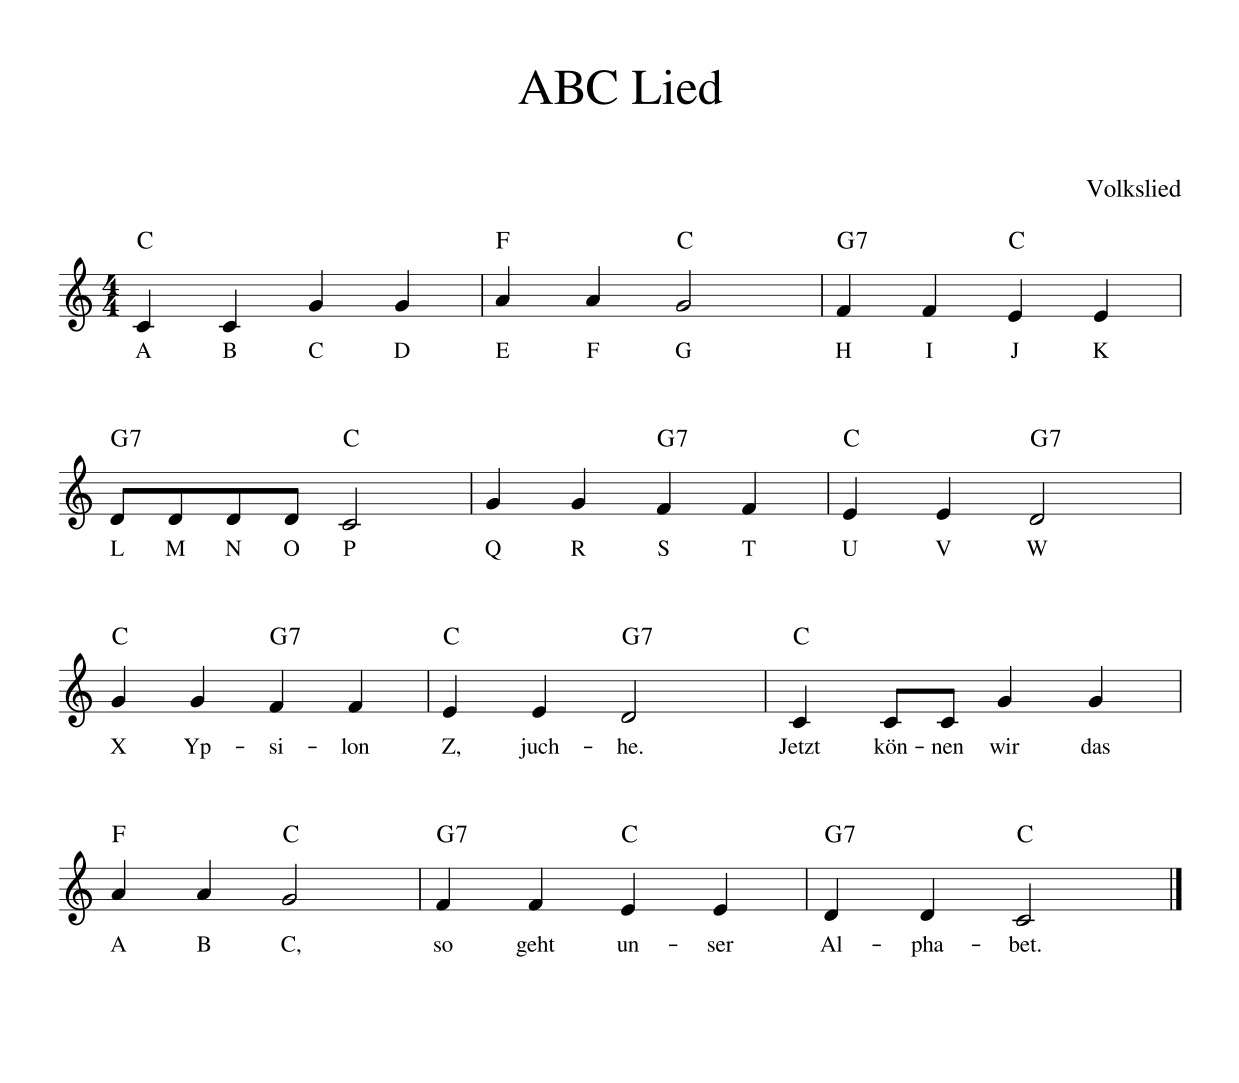 Das ABC Lied - Kinderlieder - Noten - Text - Kinderlieder zum ...